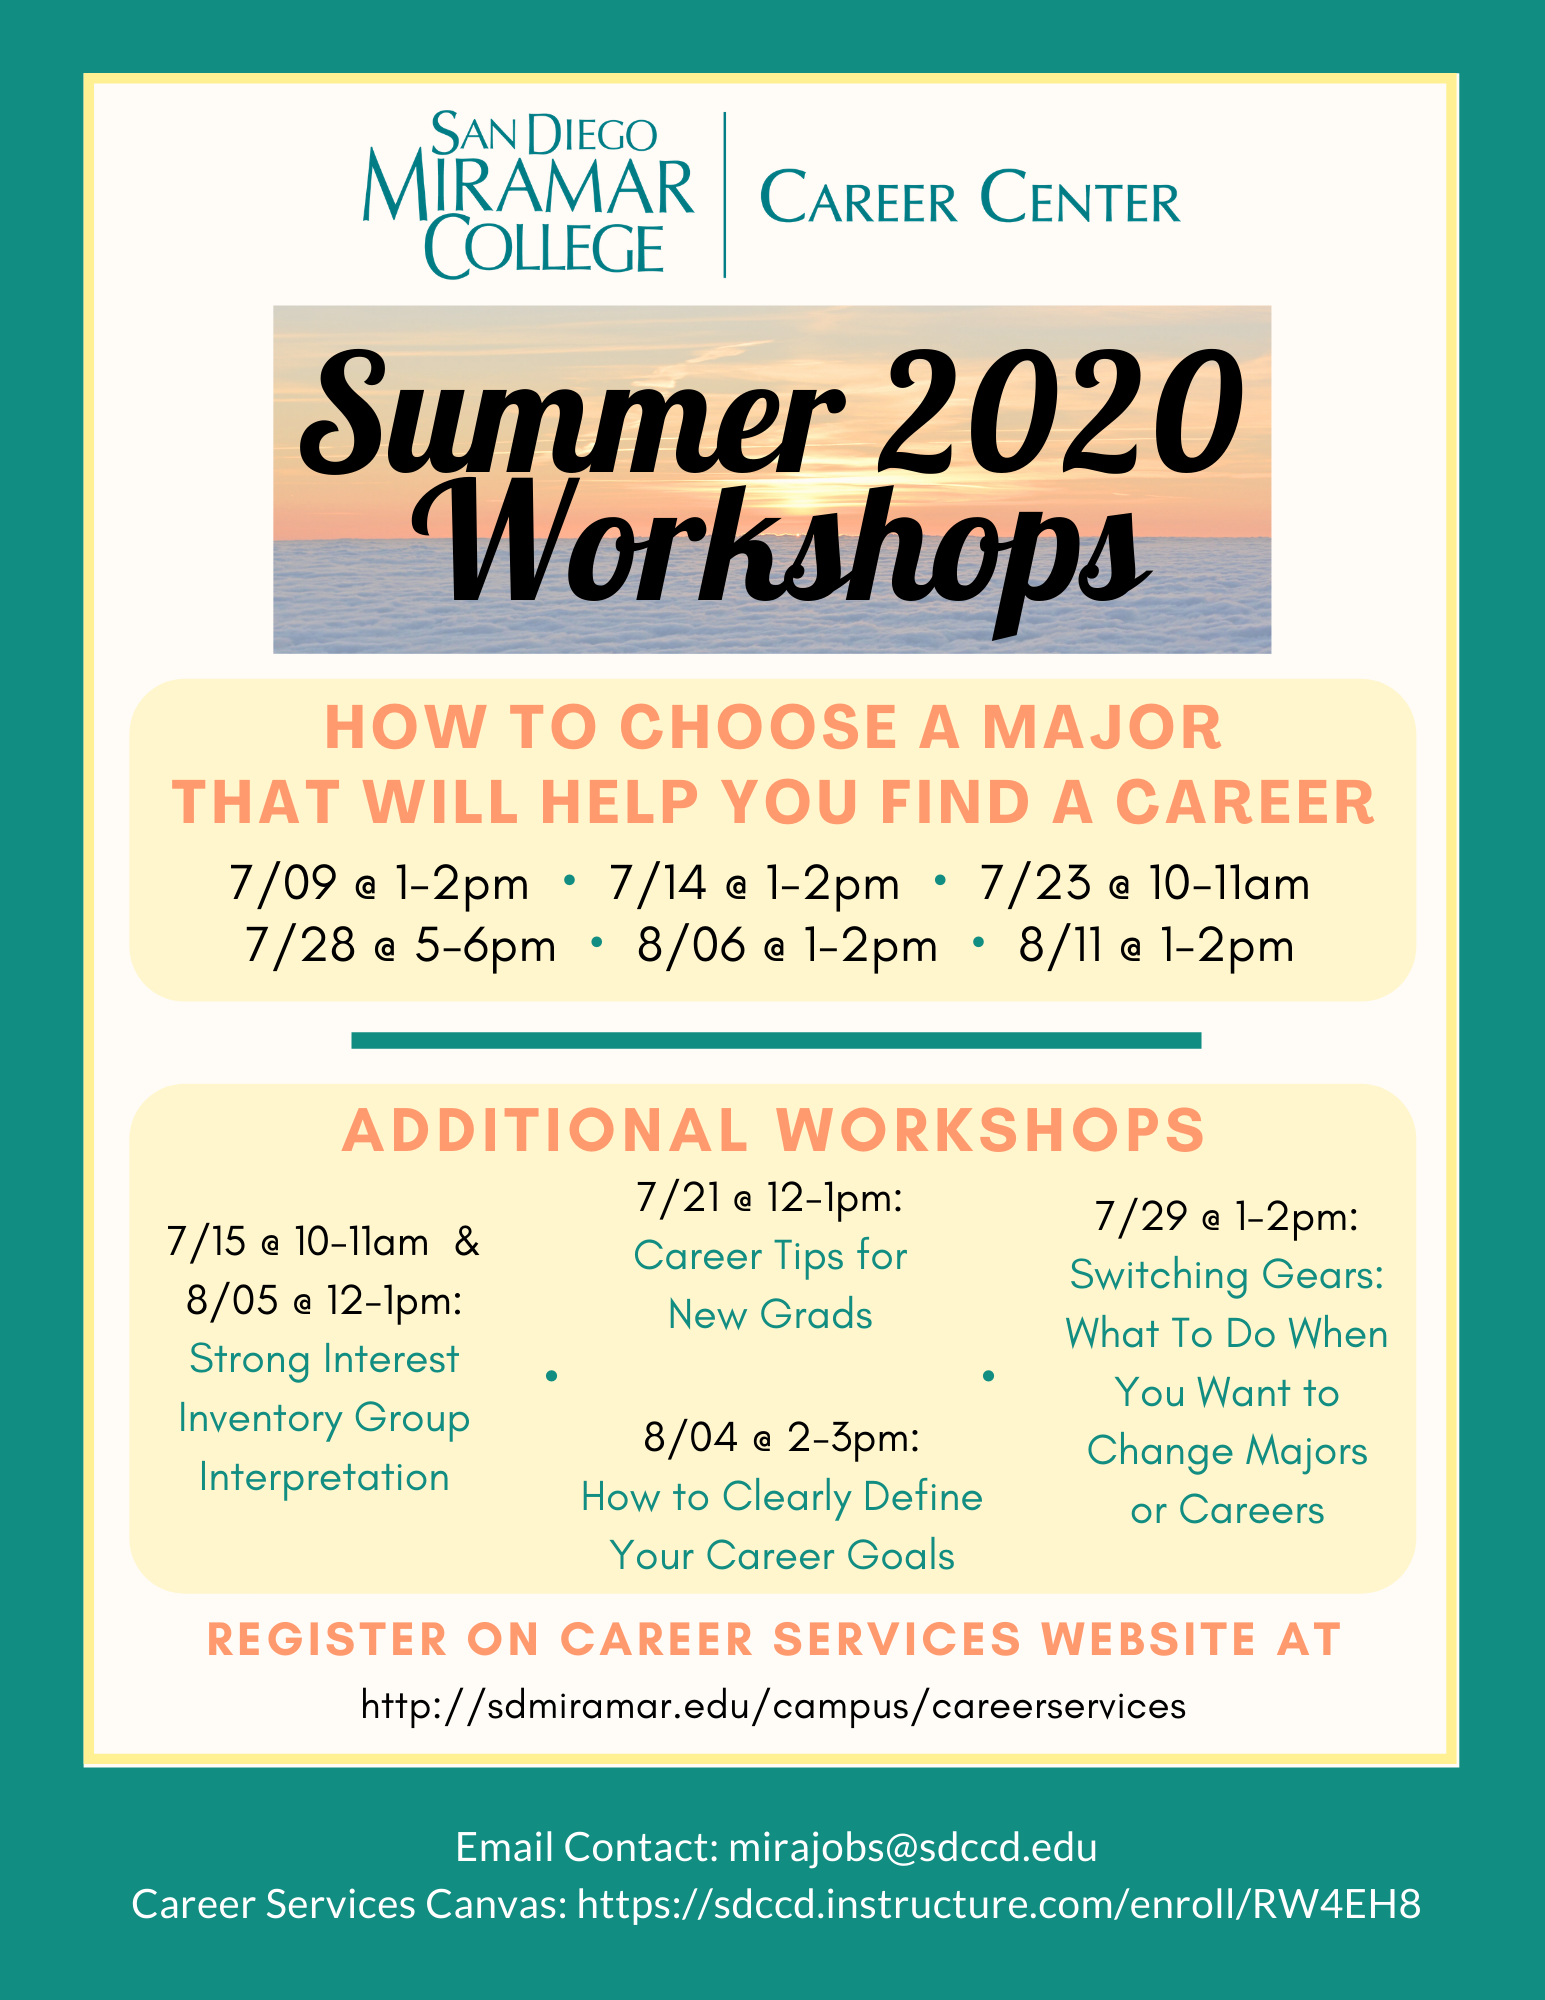 Career Center Summer 2020 Workshops. Please email mirajobs@sdccd.edu for dates, times, and details.